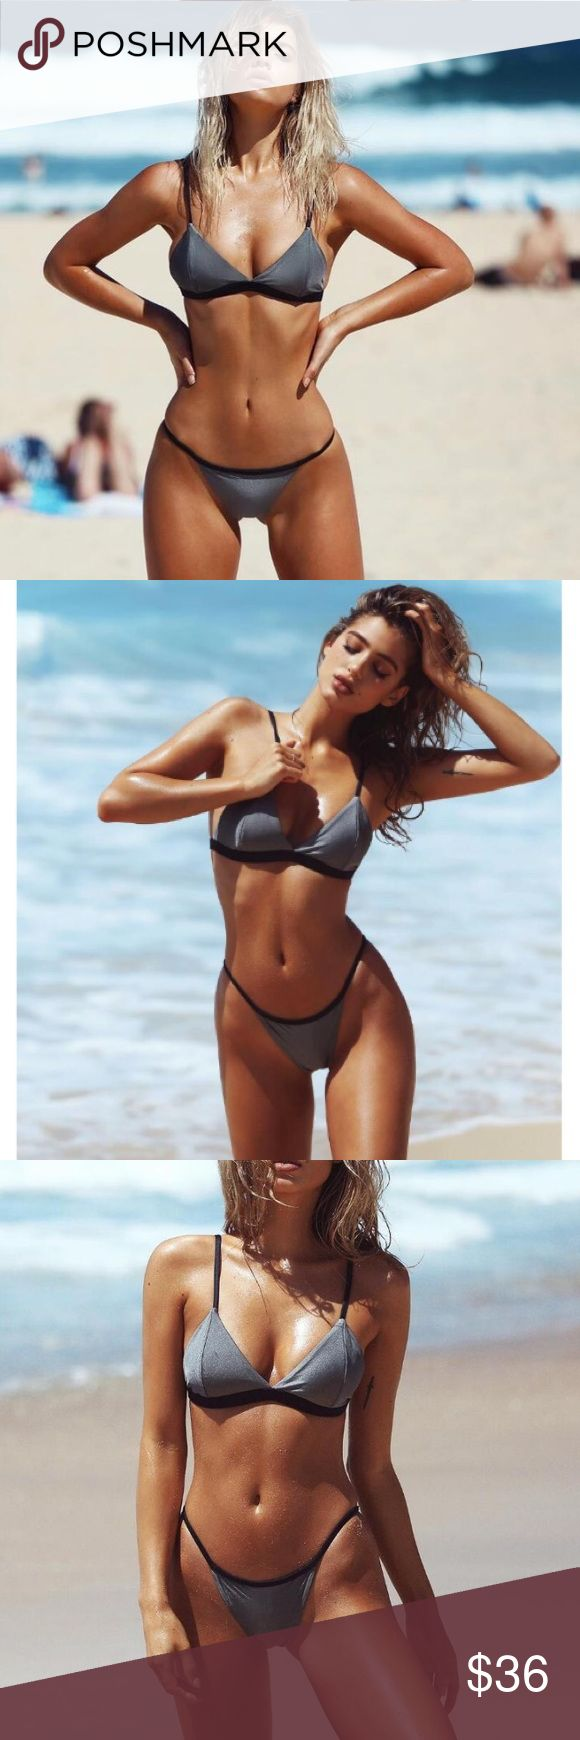 Chic Gray and Black Brazilian Bikini Gray and Black Brazilian Bikini.                              Measurements-                                                                                        Small: Bust-78/83cm & hip-87/93cm (A/B cup).          Medium: Bust-83/98cm & hip-93/98cm (B/C cup) Swim Bikinis